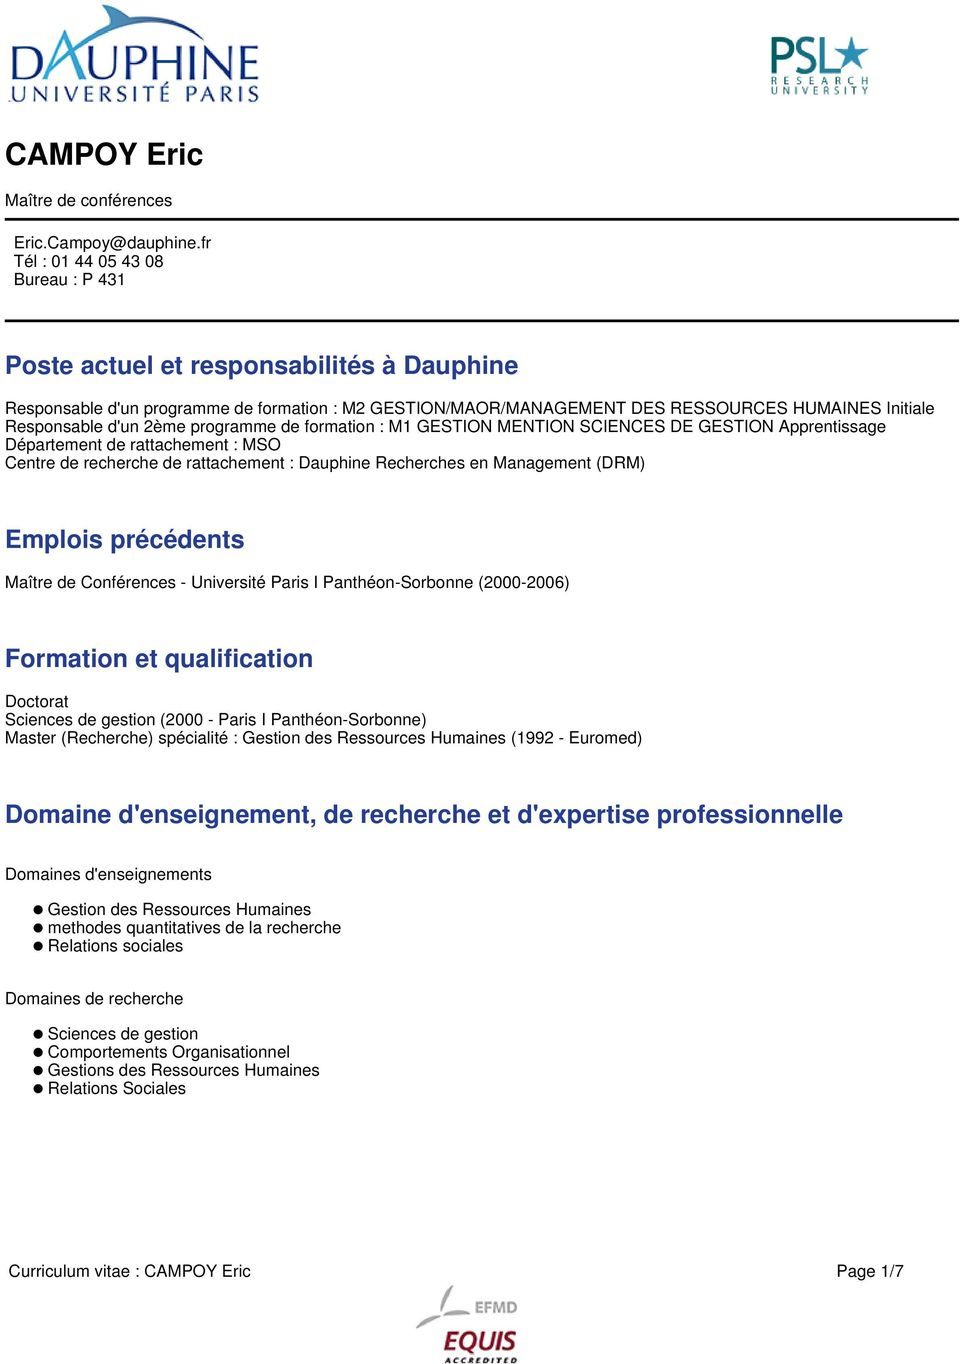 d'un 2ème programme de formation : M1 GESTION MENTION SCIENCES DE GESTION Apprentissage Département de rattachement : MSO Centre de recherche de rattachement : Dauphine Recherches en Management (DRM)